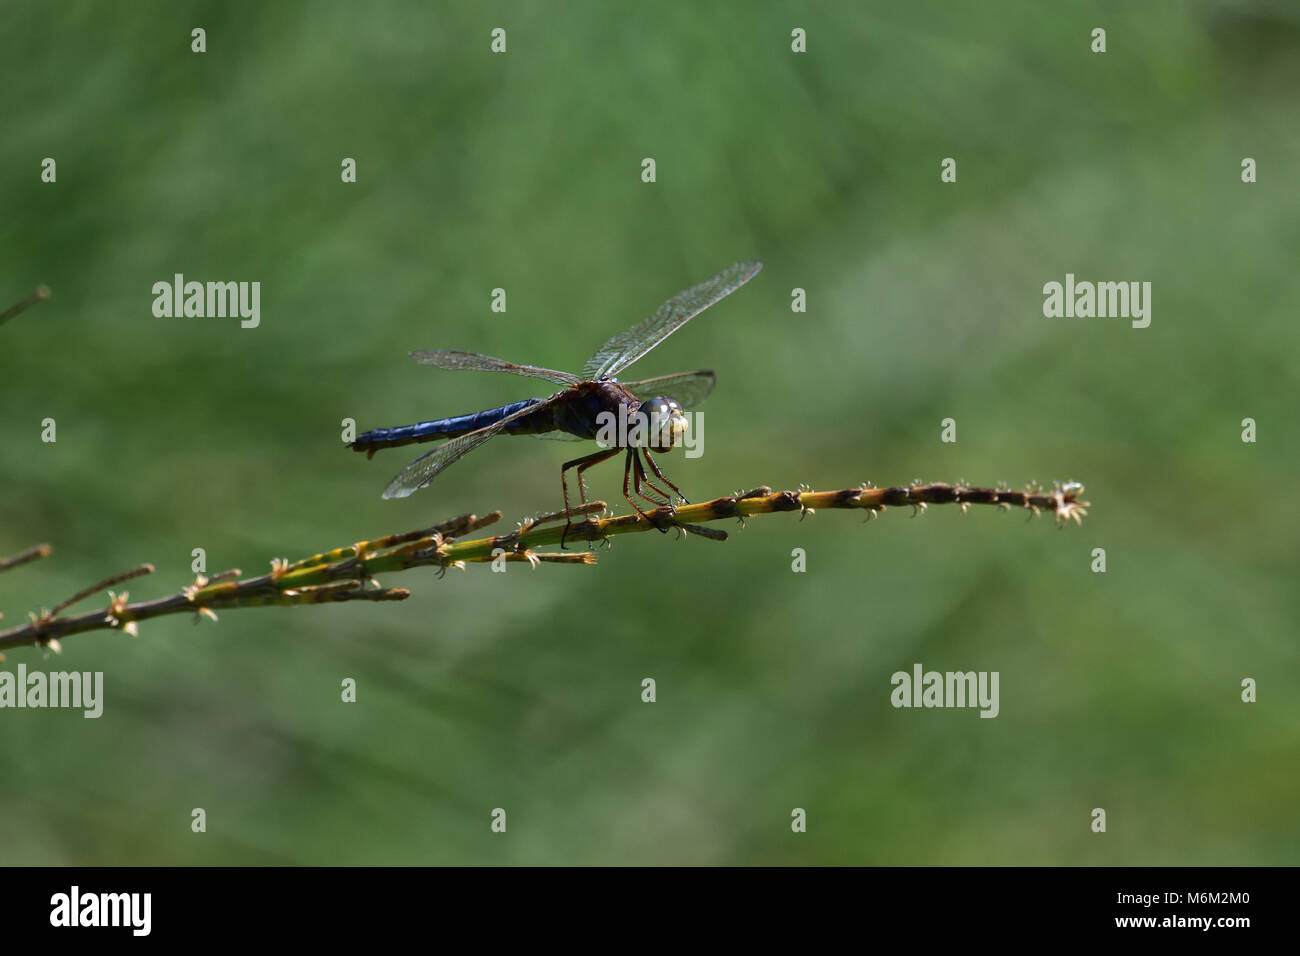 An Australian young Male Black-headed Skimmer Dragonfly resting on a Plant stem Stock Photo